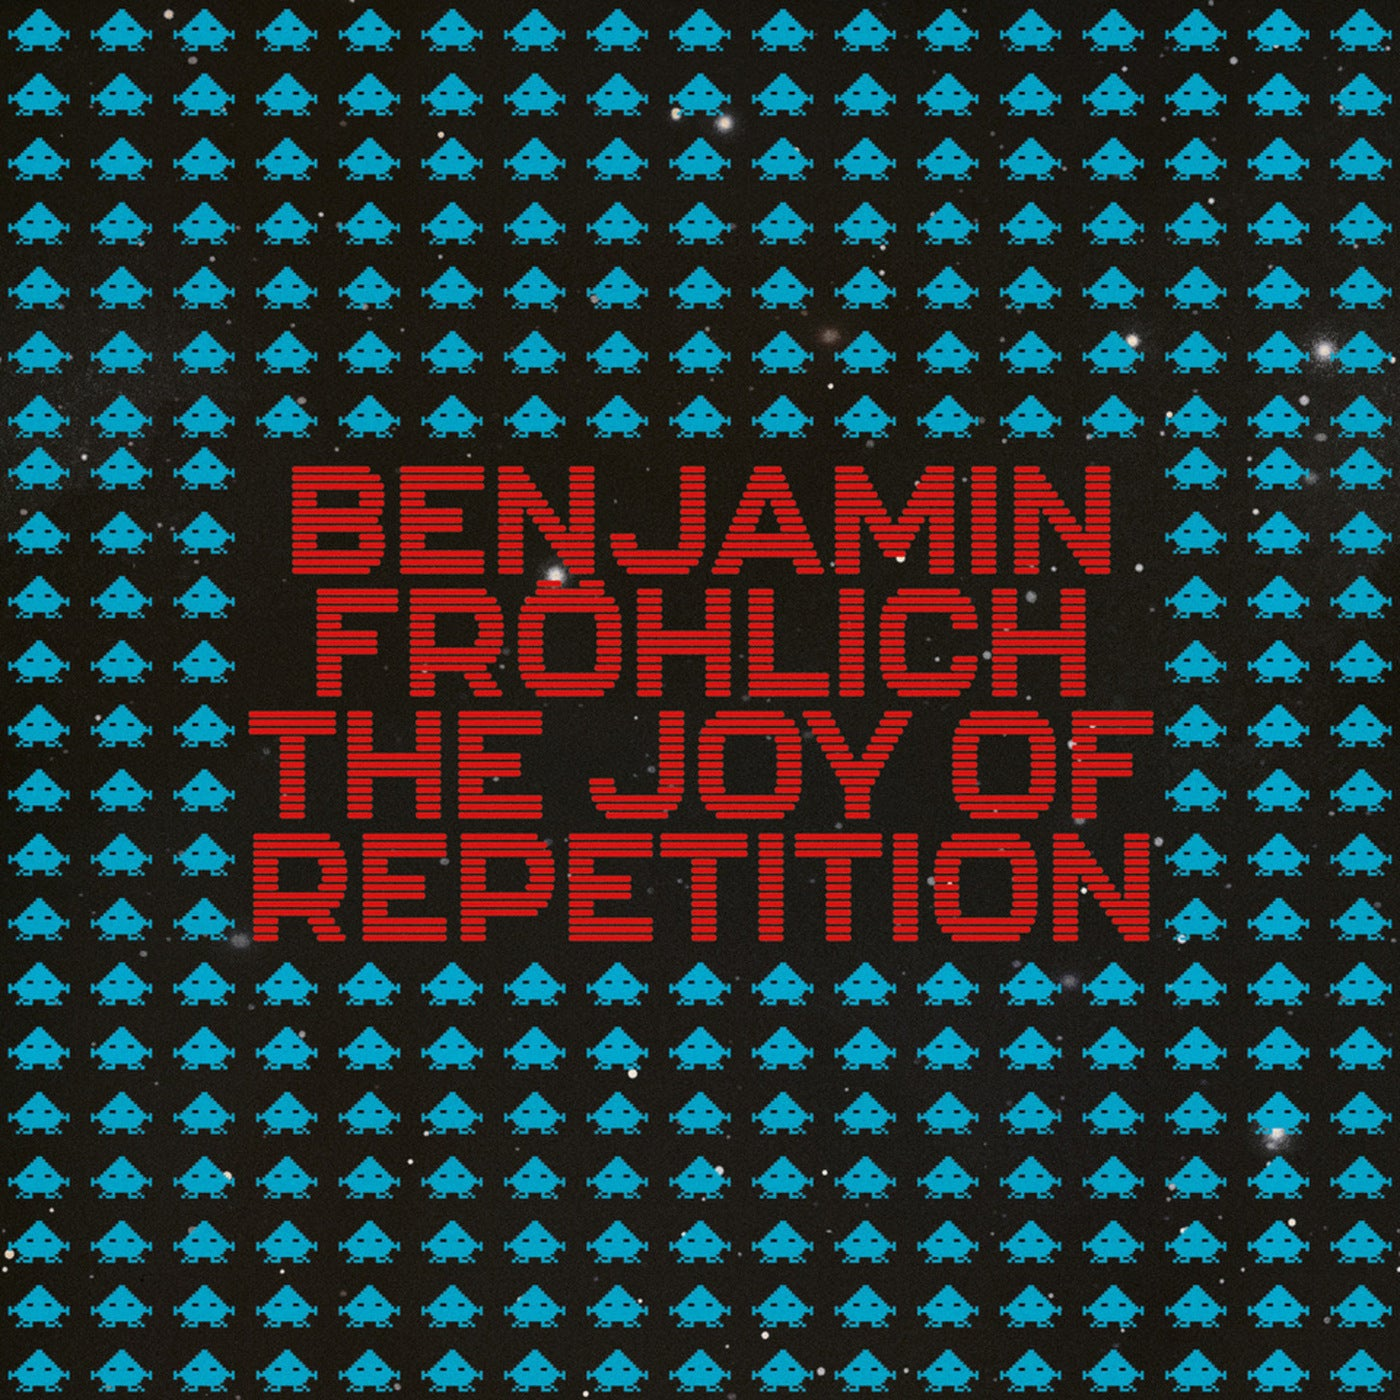 Benjamin Frohlich - The Joy of Repetition (2021)